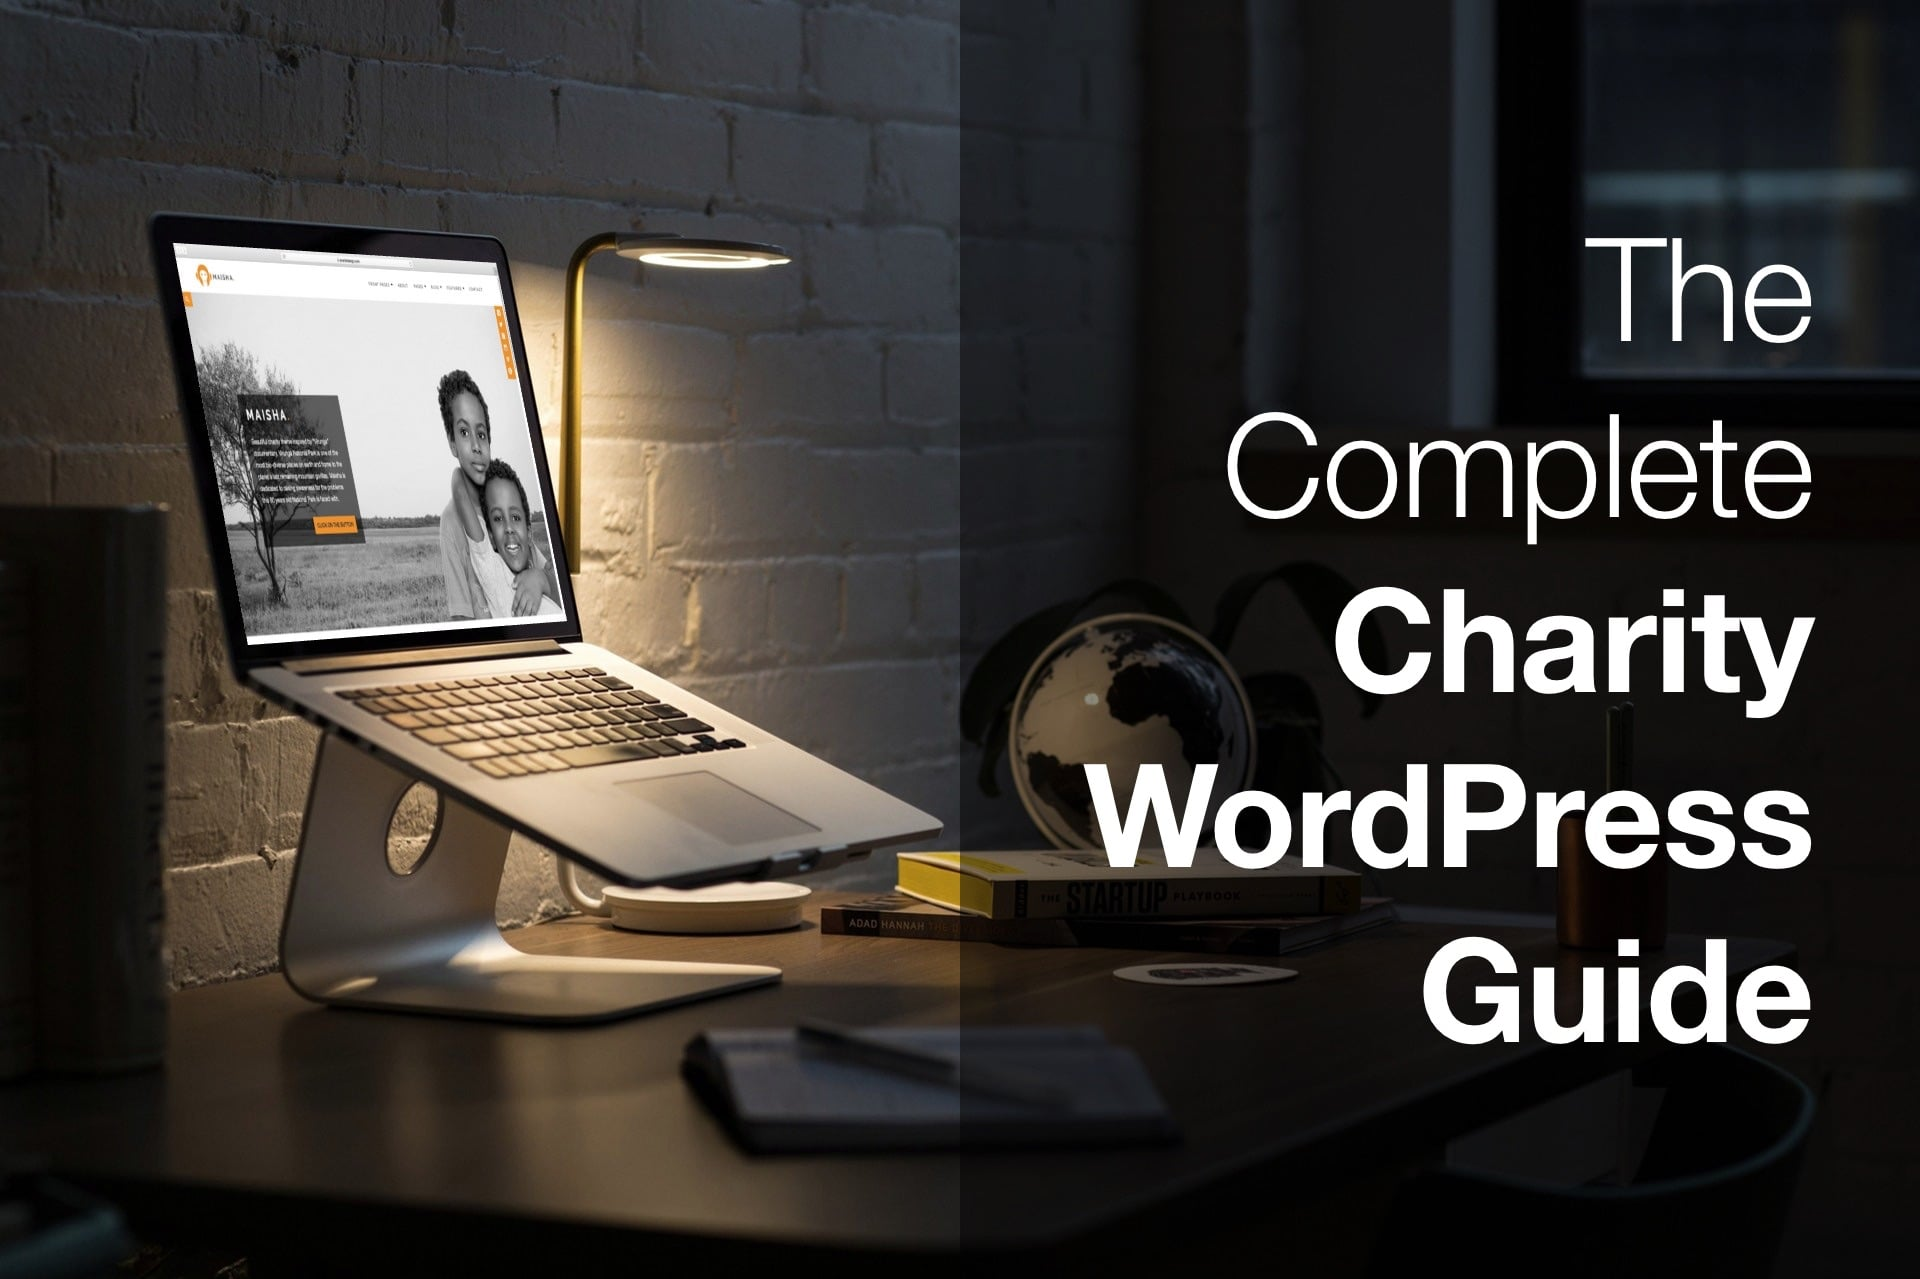 The Complete Charity WordPress Guide